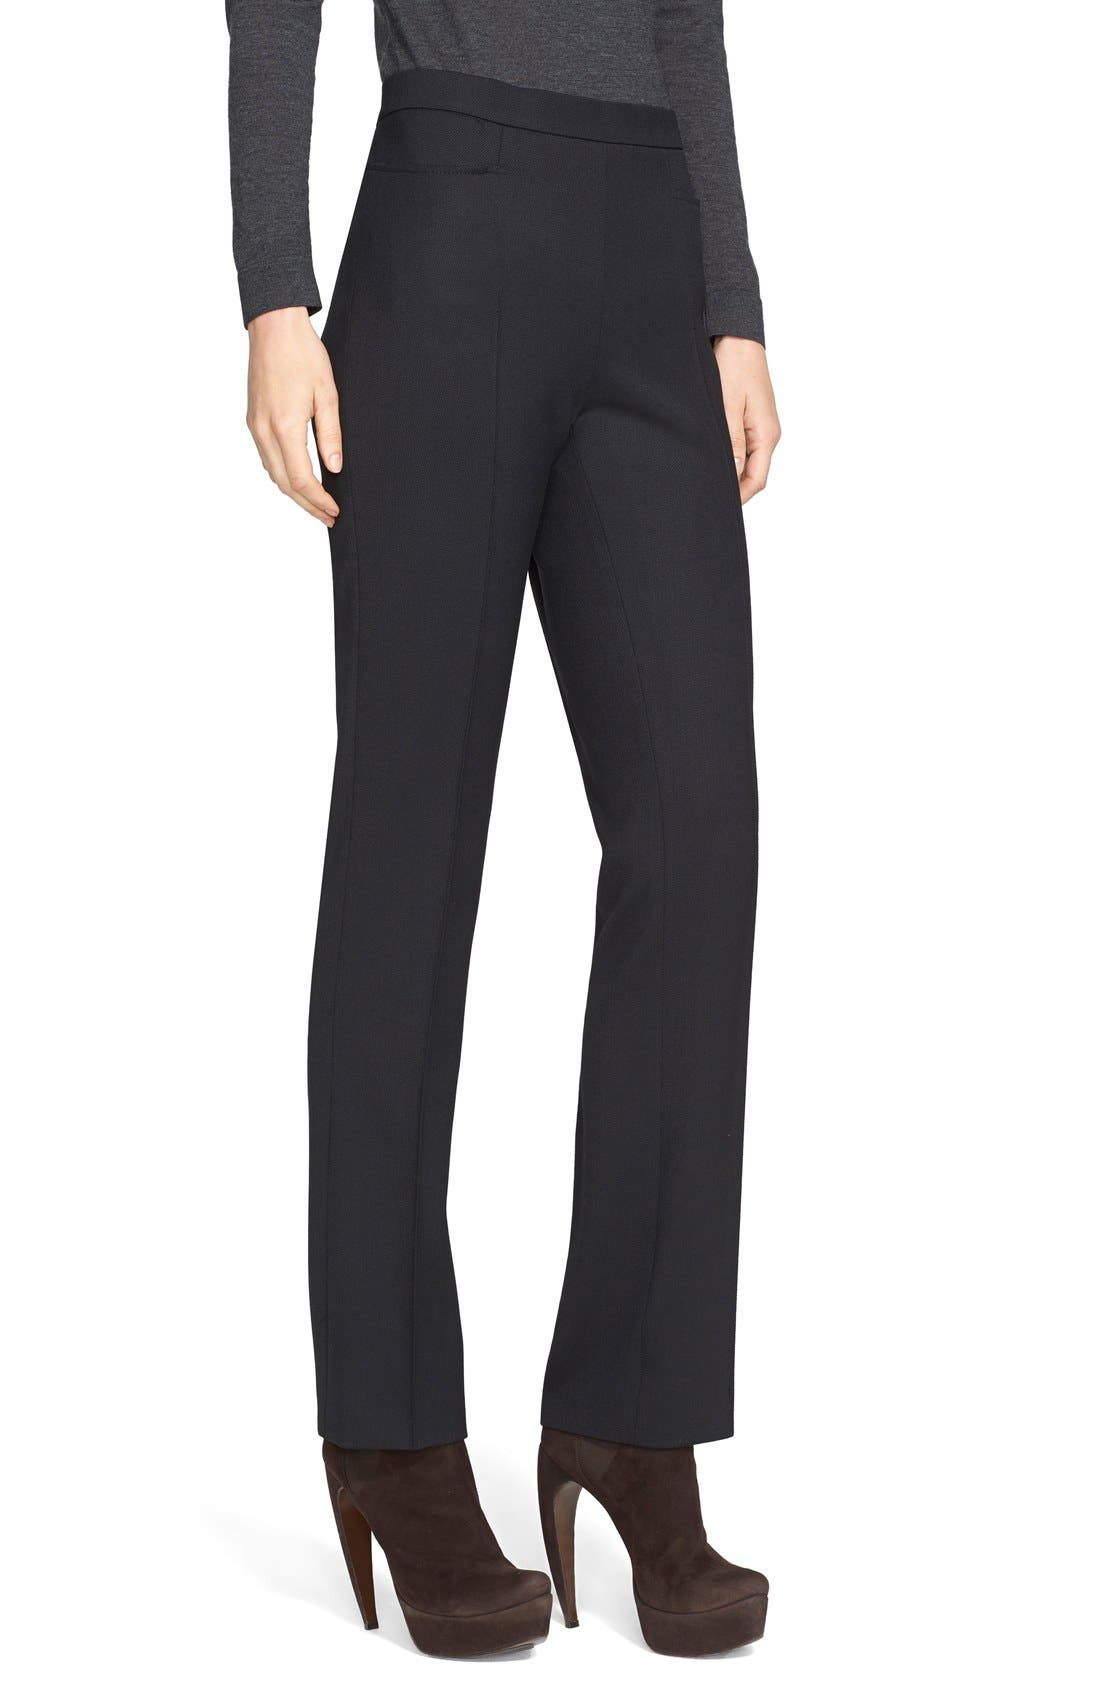 'Francoise' Stretch Gabardine Pants,                             Main thumbnail 1, color,                             BLACK